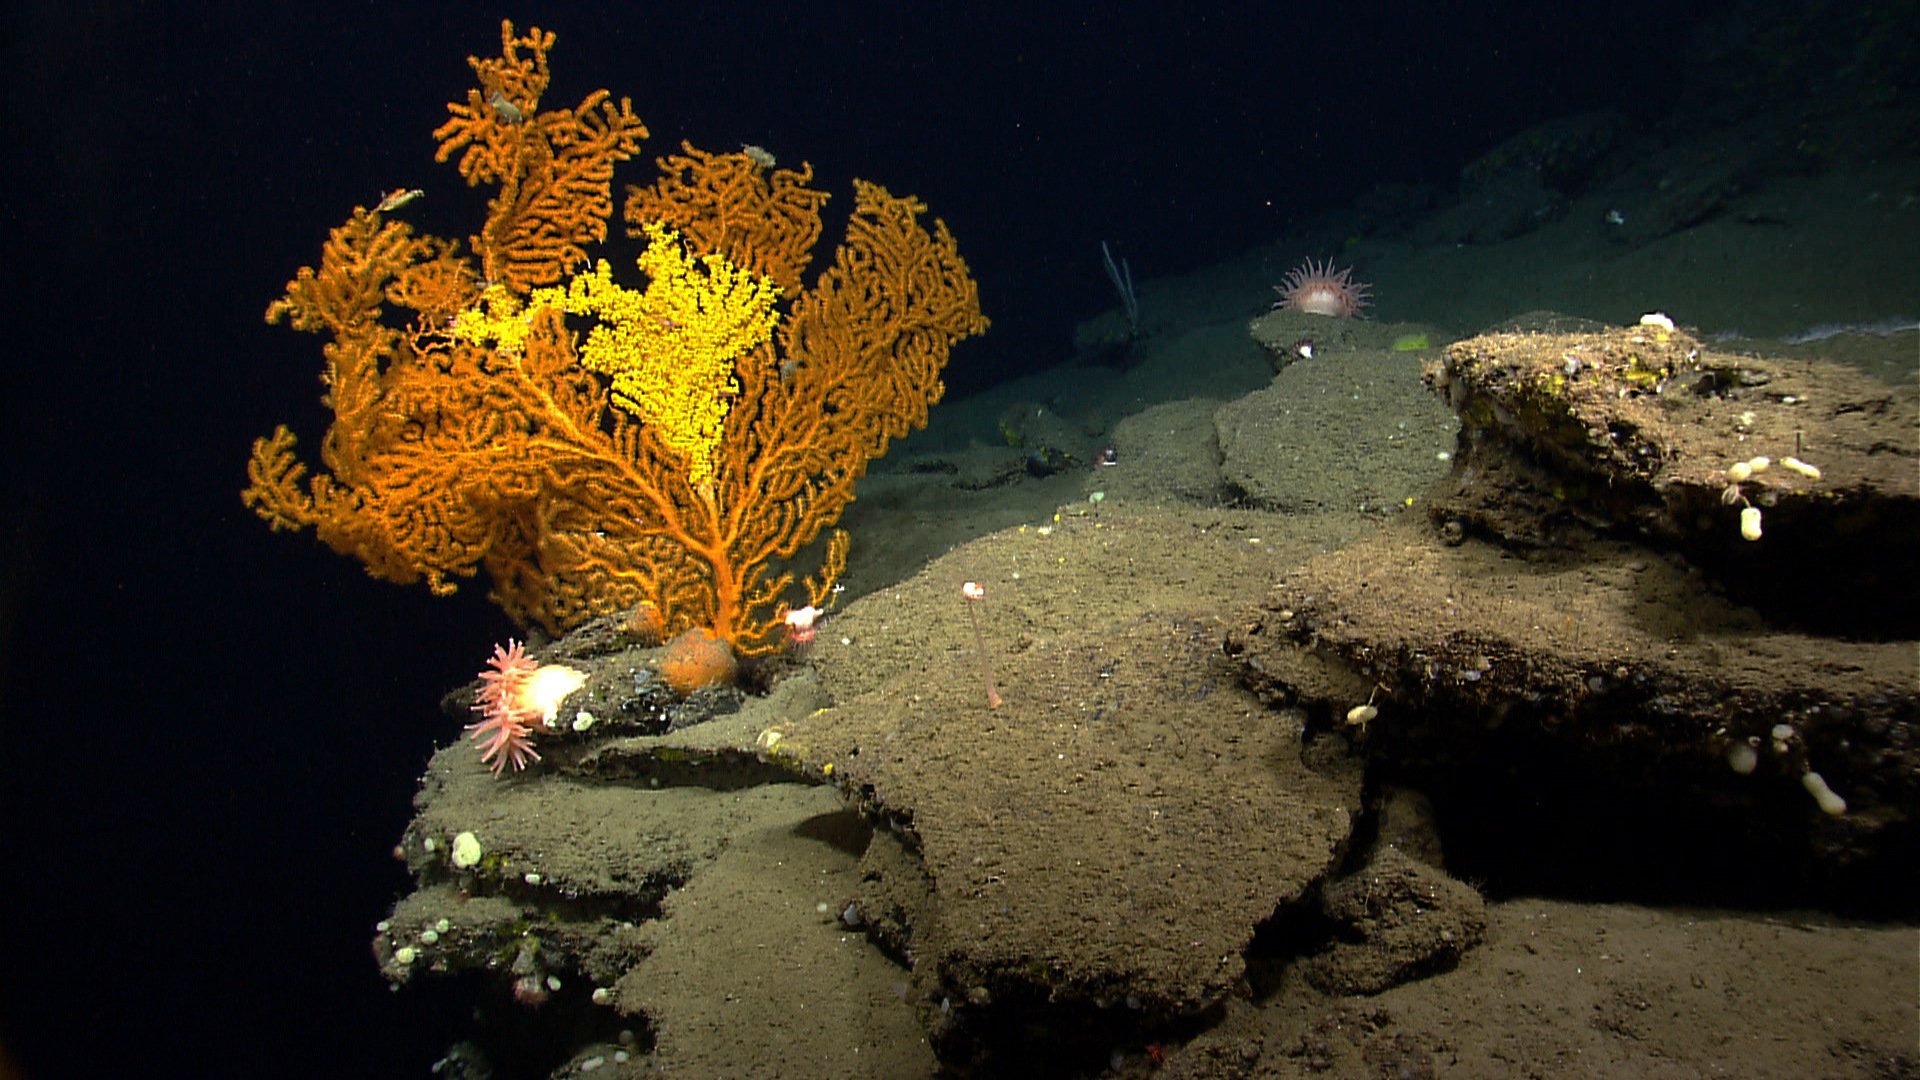 A Paramuricea coral in Nygren Canyon, 165 nautical miles southeast of Cape Cod, Massachusetts. The photograph was taken by the NOAA Ocean Explorer, Okeanos. (Photo Courtesy NOAA)